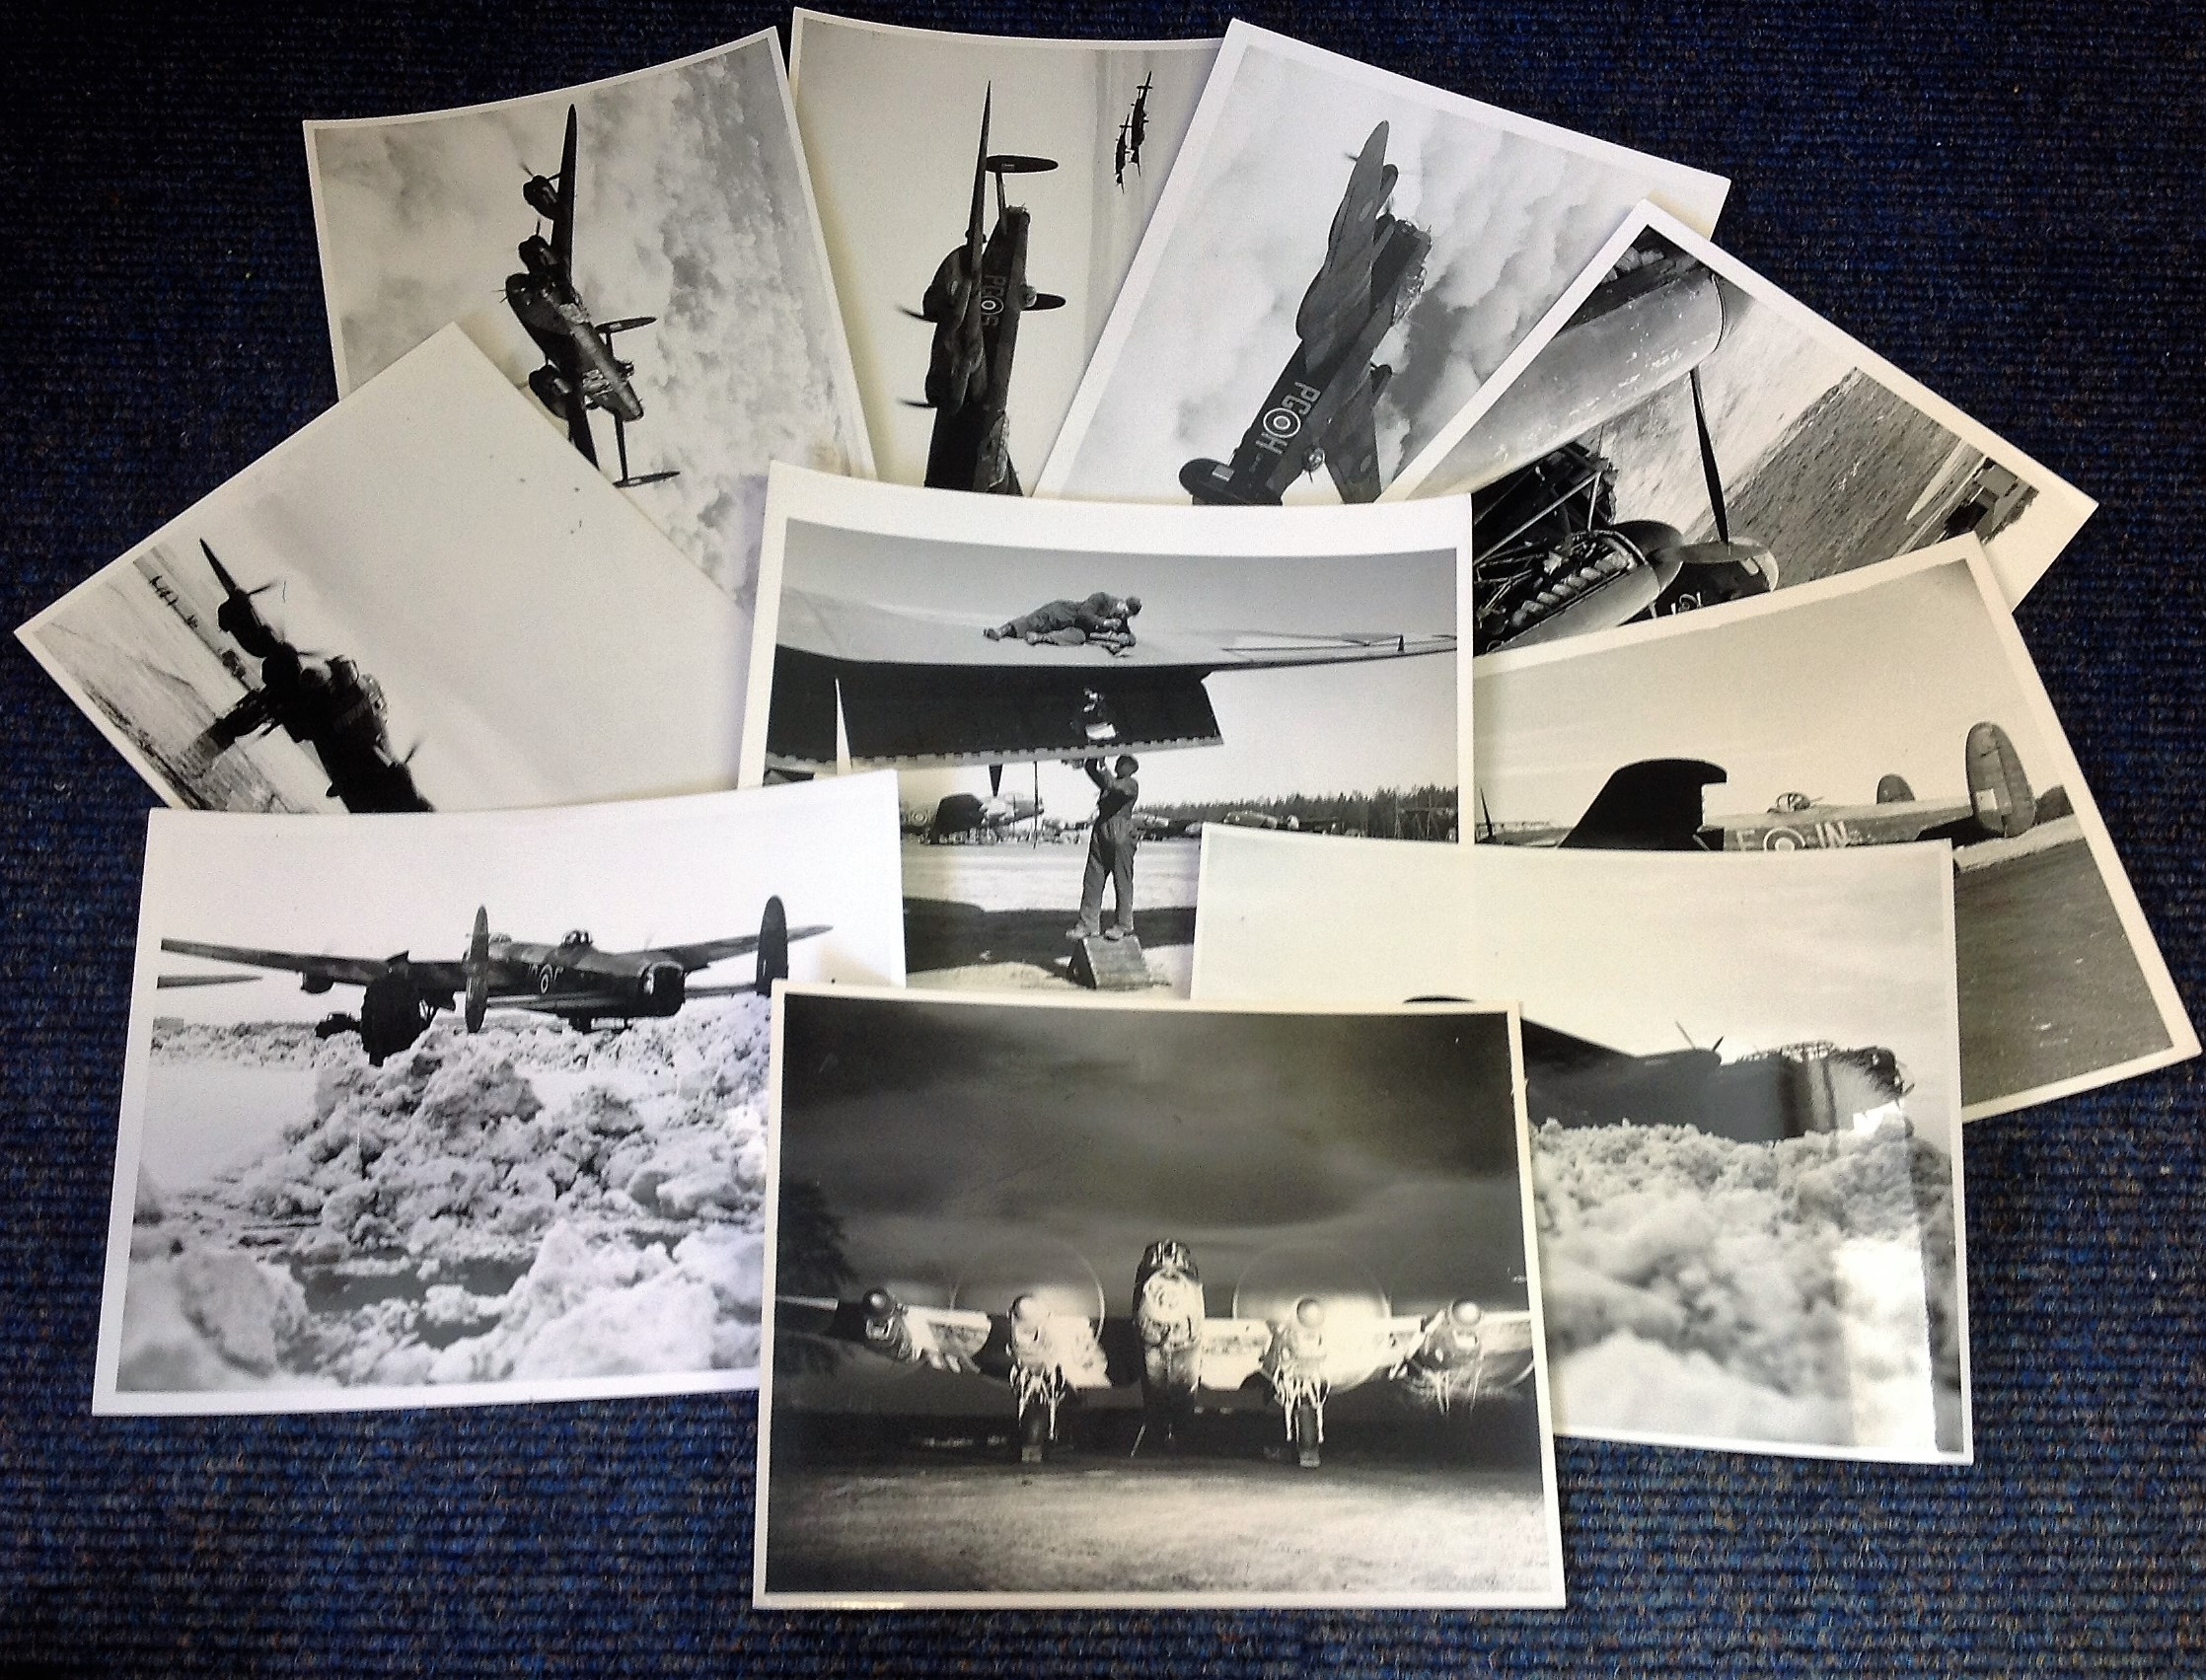 Lot 24 - World War Two ten 6x8 vintage b/w photos Avro Lancaster bomber pictured during World War Two. Good